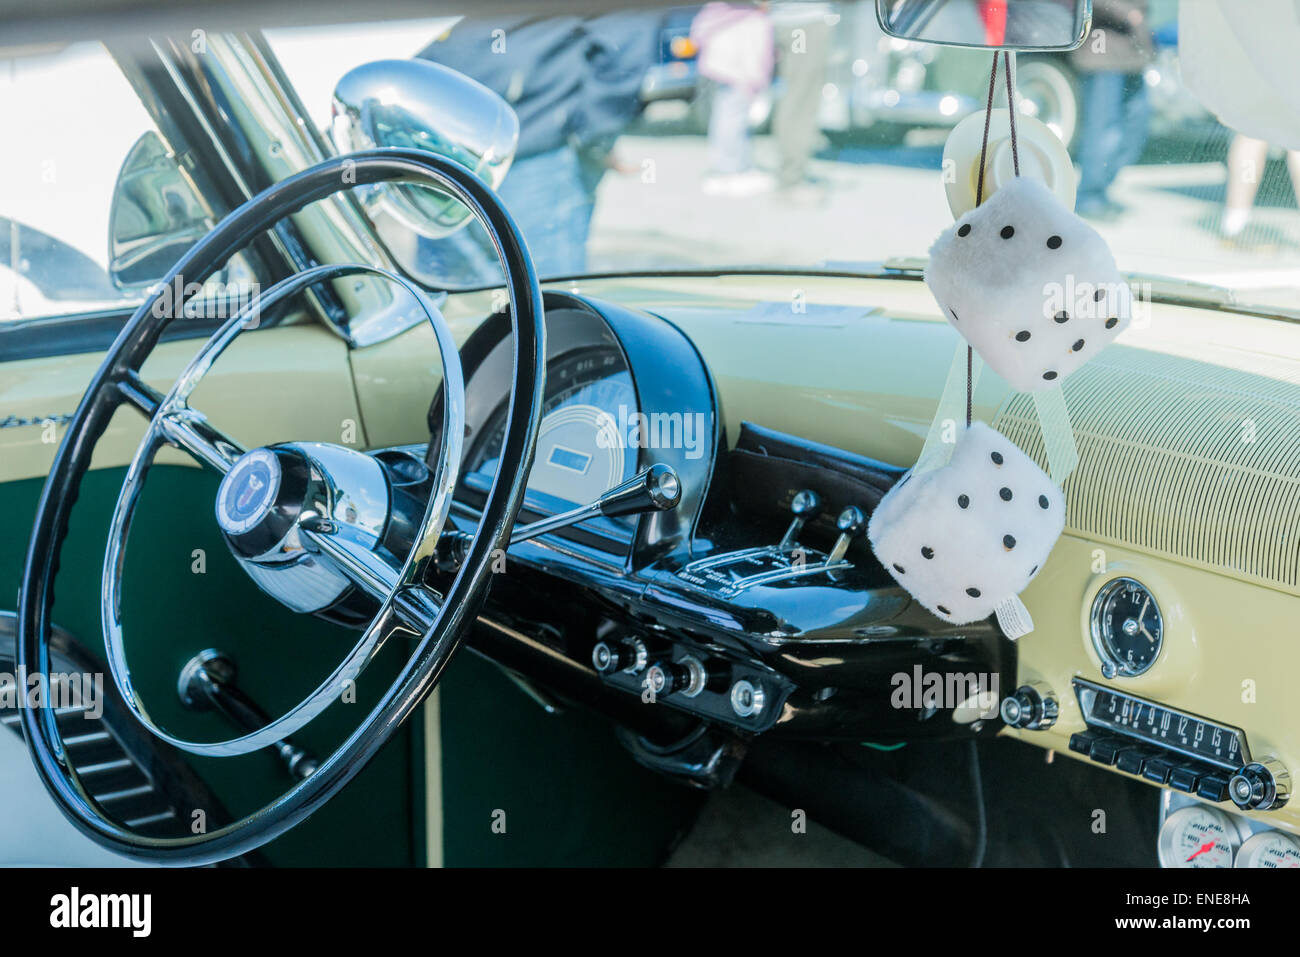 Fuzzy dice hanging from rear view mirror of classic automobile. - Stock Image